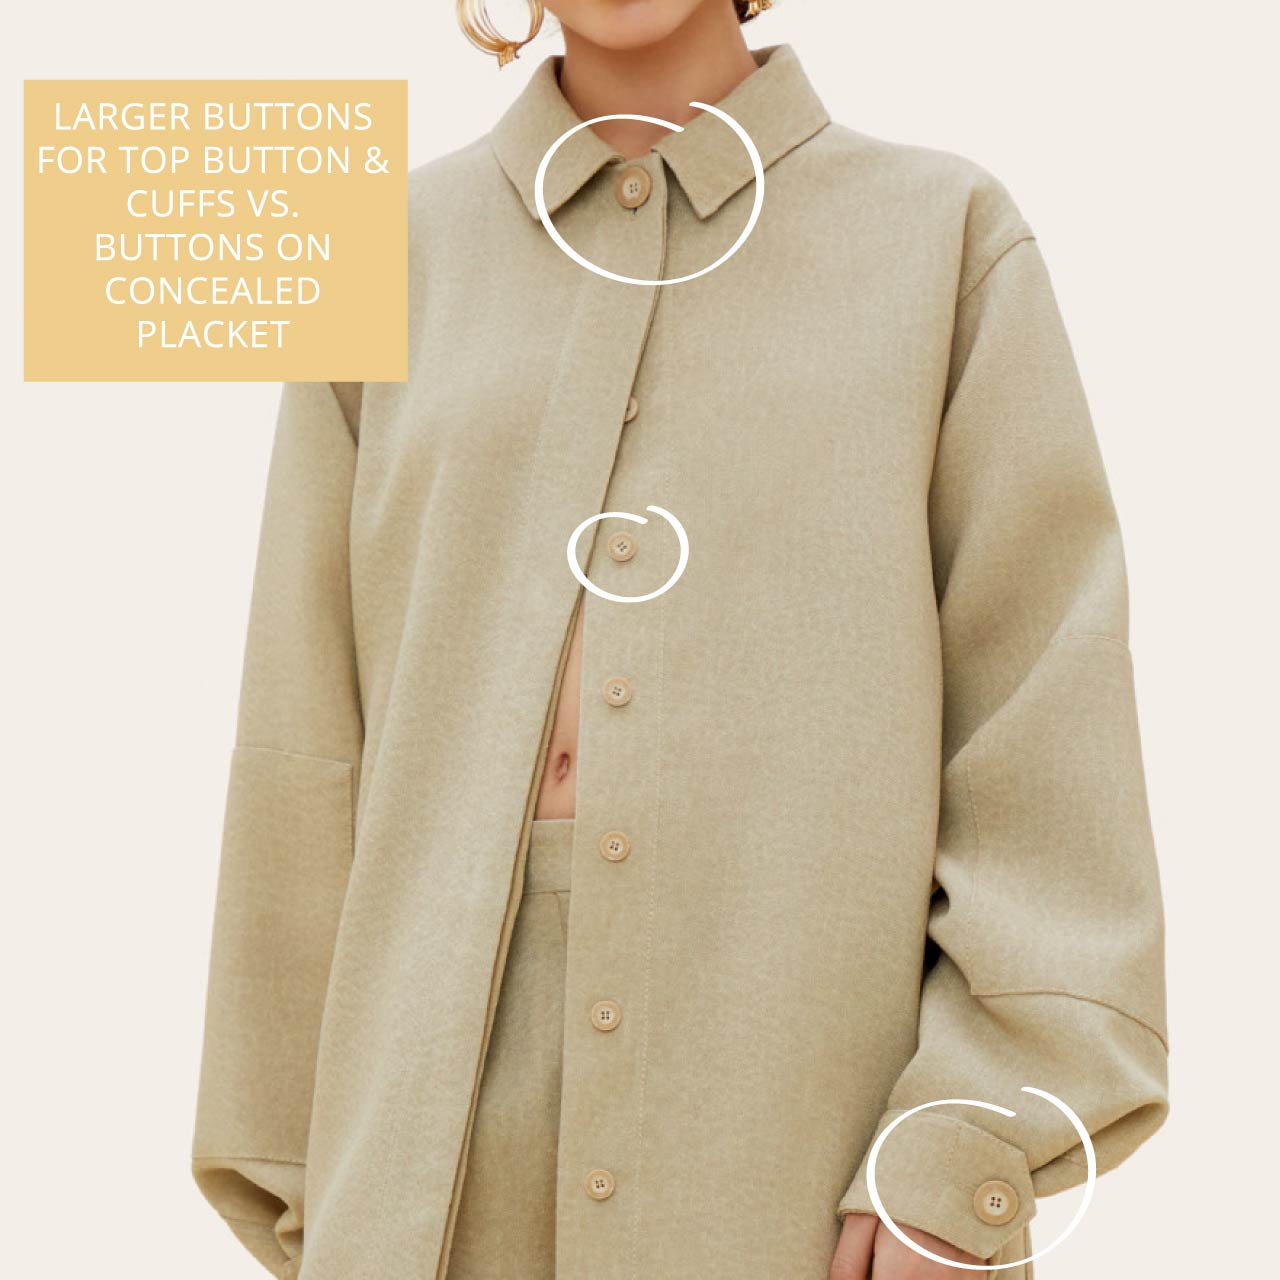 Details on Jacquemus Raw Silk Shirt | The Cutting Class. Jacquemus AW19 'La chemise Loya' in dark beige with larger buttons for top button and cuffs.